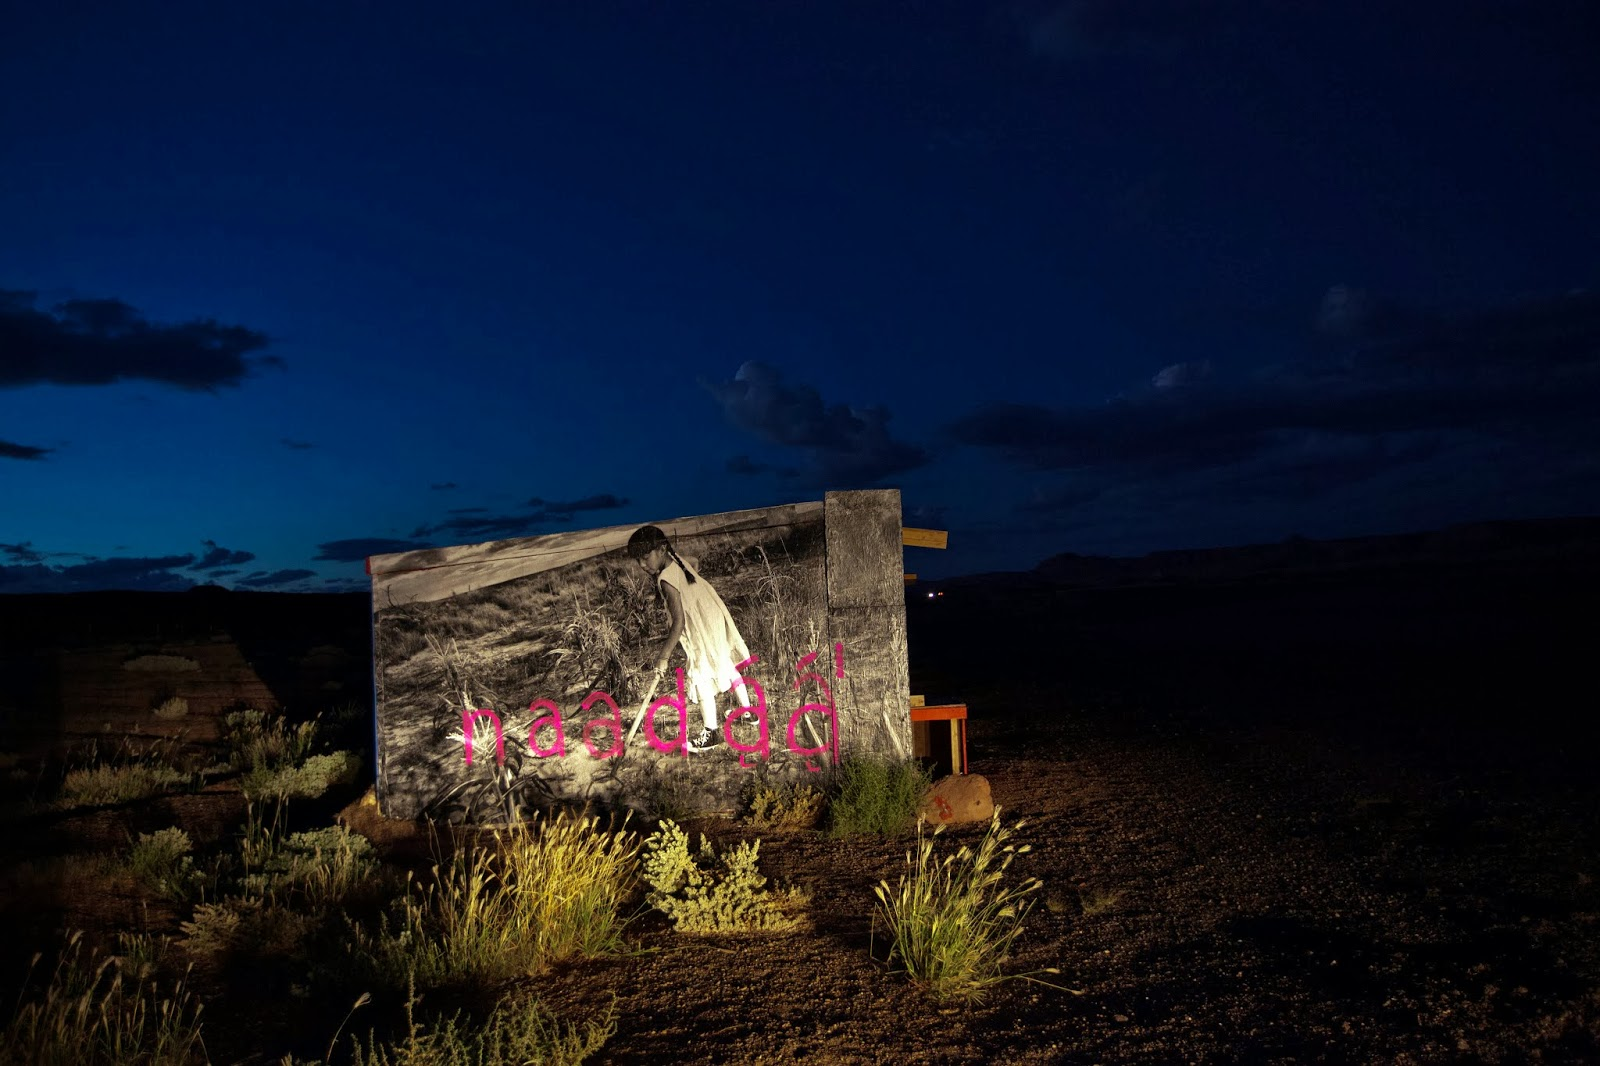 jetsonorama-naa-daa-new-mural-in-arizona-01